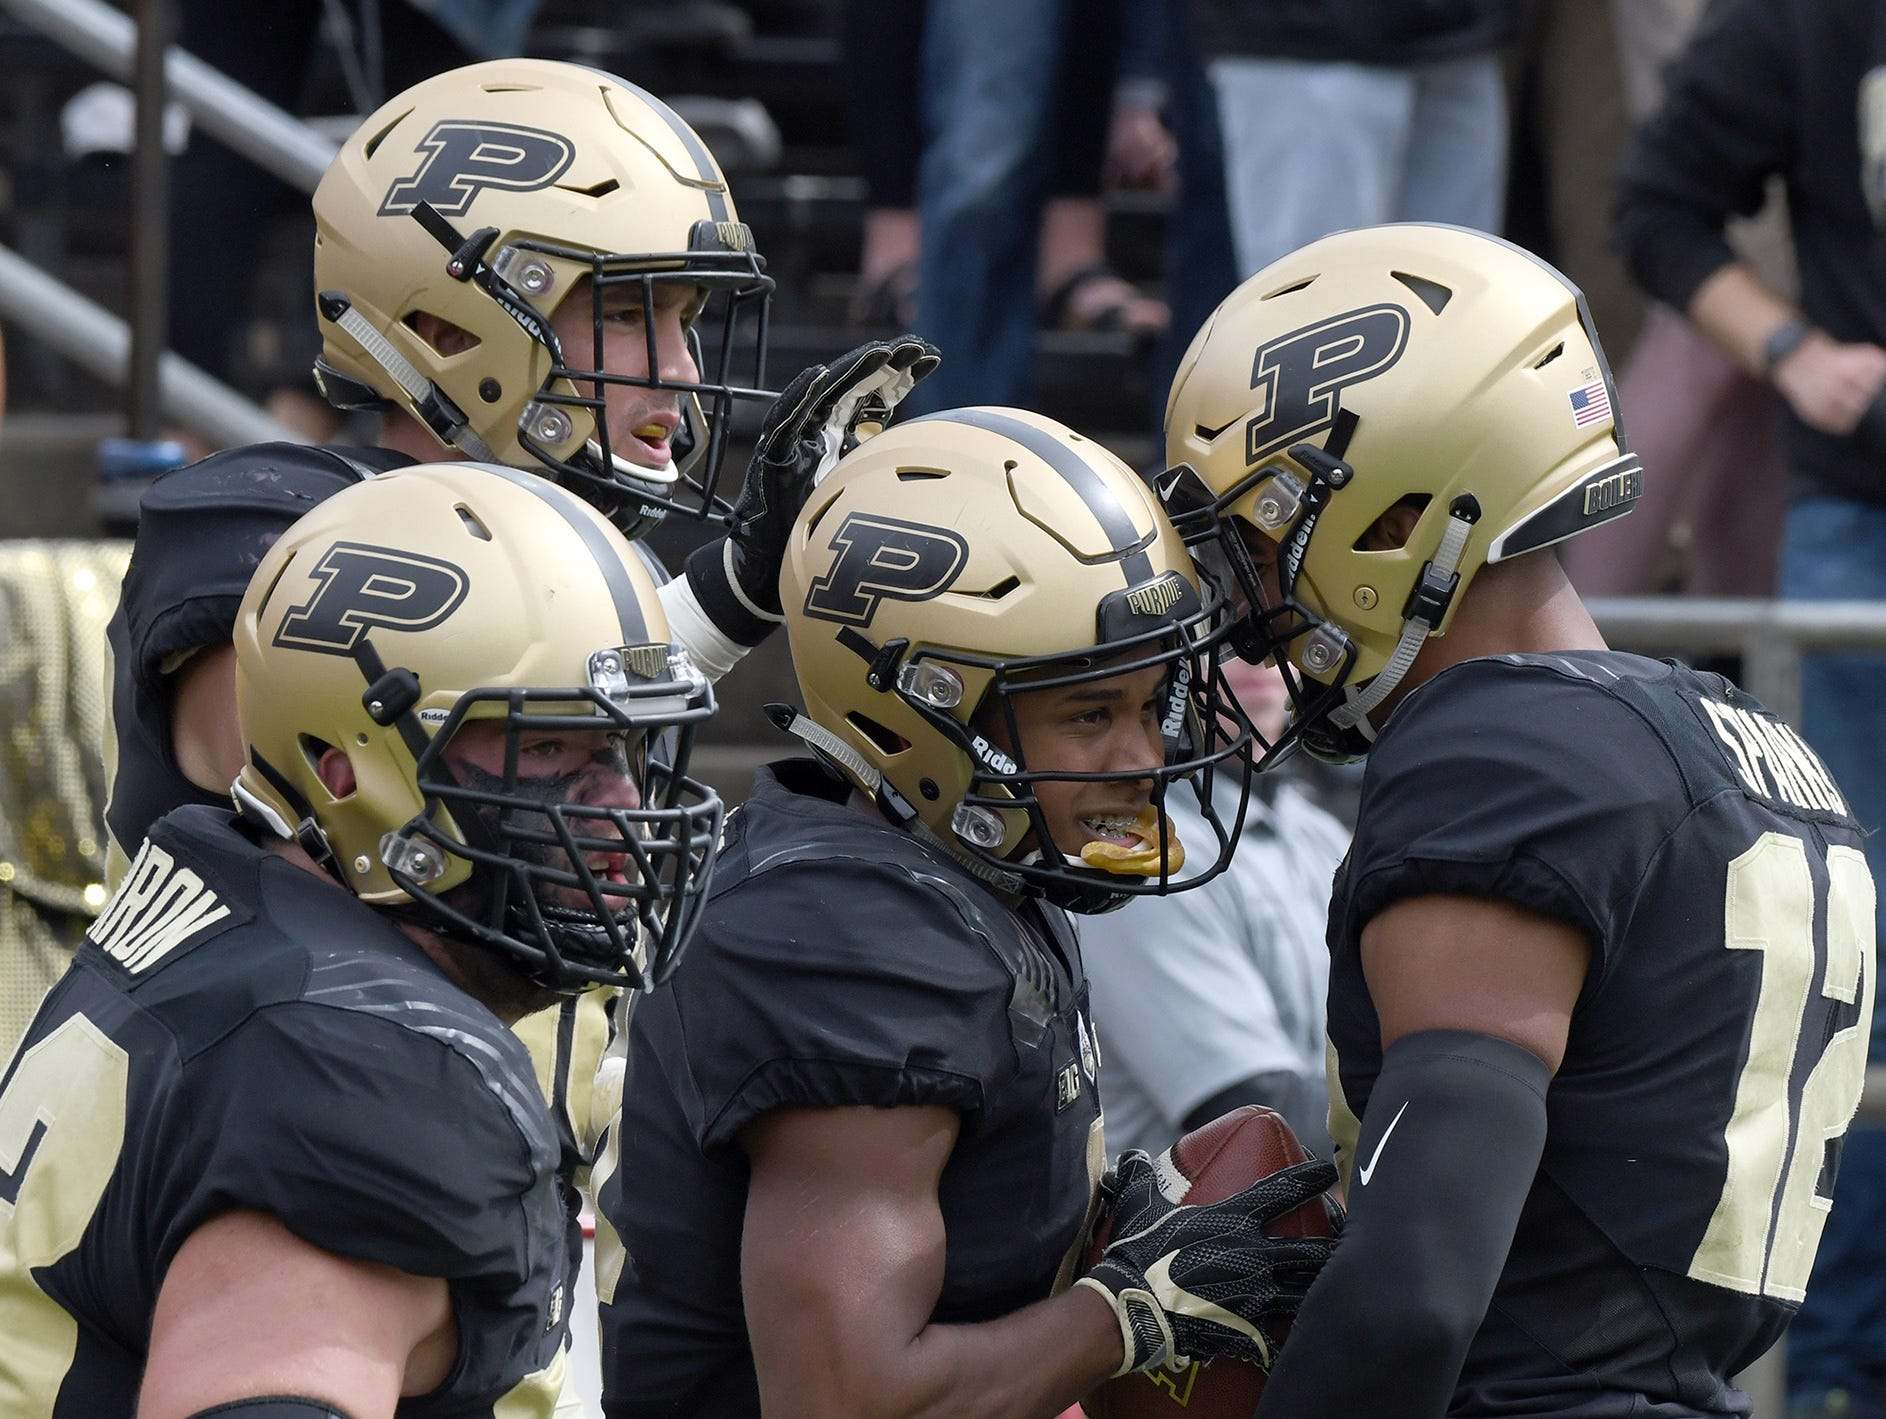 Purdue's Rondale Moore is congratulated after scoring a touchdown in Purdue's 30-13 win in West Lafayette on Saturday September 22, 2018.